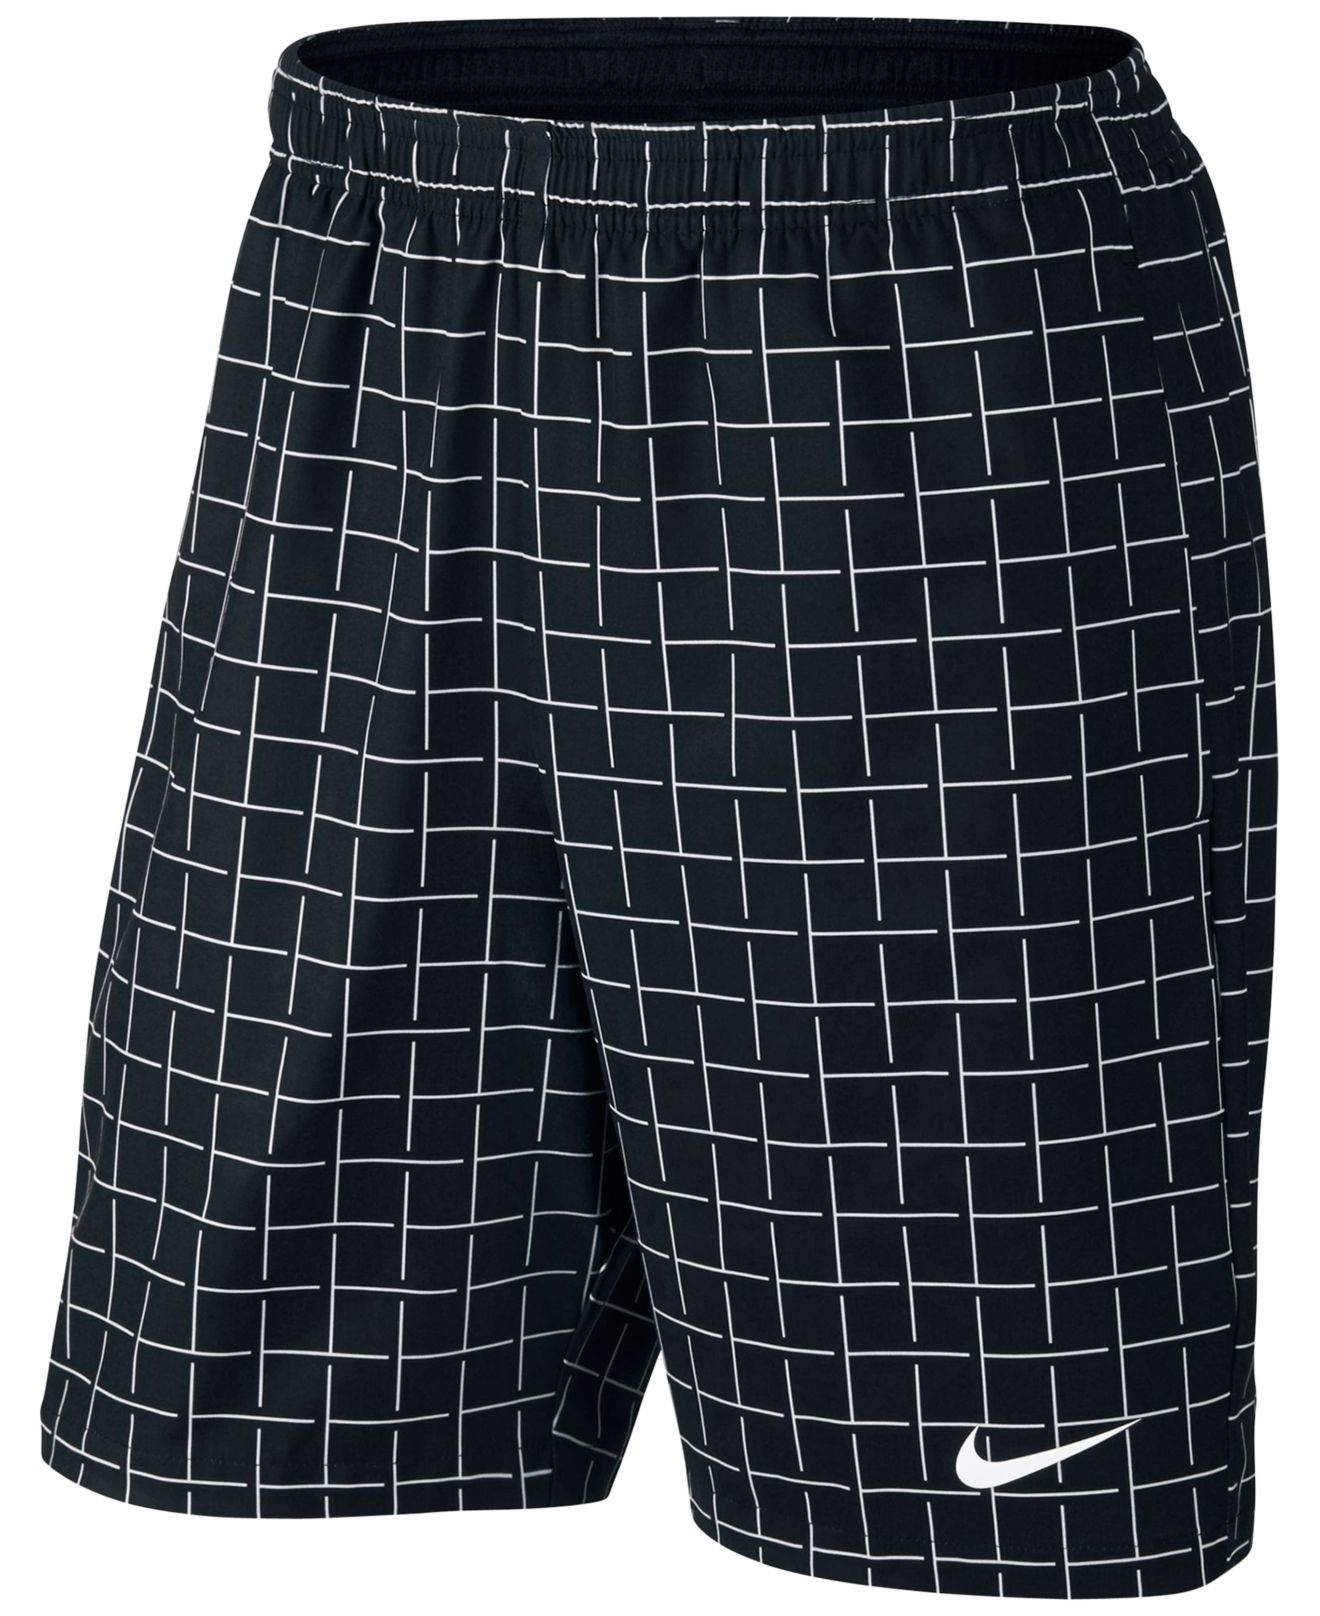 Nike Court Plaid Short 9 645041-010, Nike Court Plaid Short 9 645041-010 в Новосибирске, Nike Court Plaid Short 9 645041-010 цена, Nike Court Plaid Short 9 645041-010 купить, Nike Court Plaid Short 9 645041-010 приобрети, Nike Court Plaid Short 9 645041-010 дешево, Nike Court Plaid Short 9 645041-010 с доставкой, Nike Court Plaid Short 9 645041-010 от дистрибьютора.